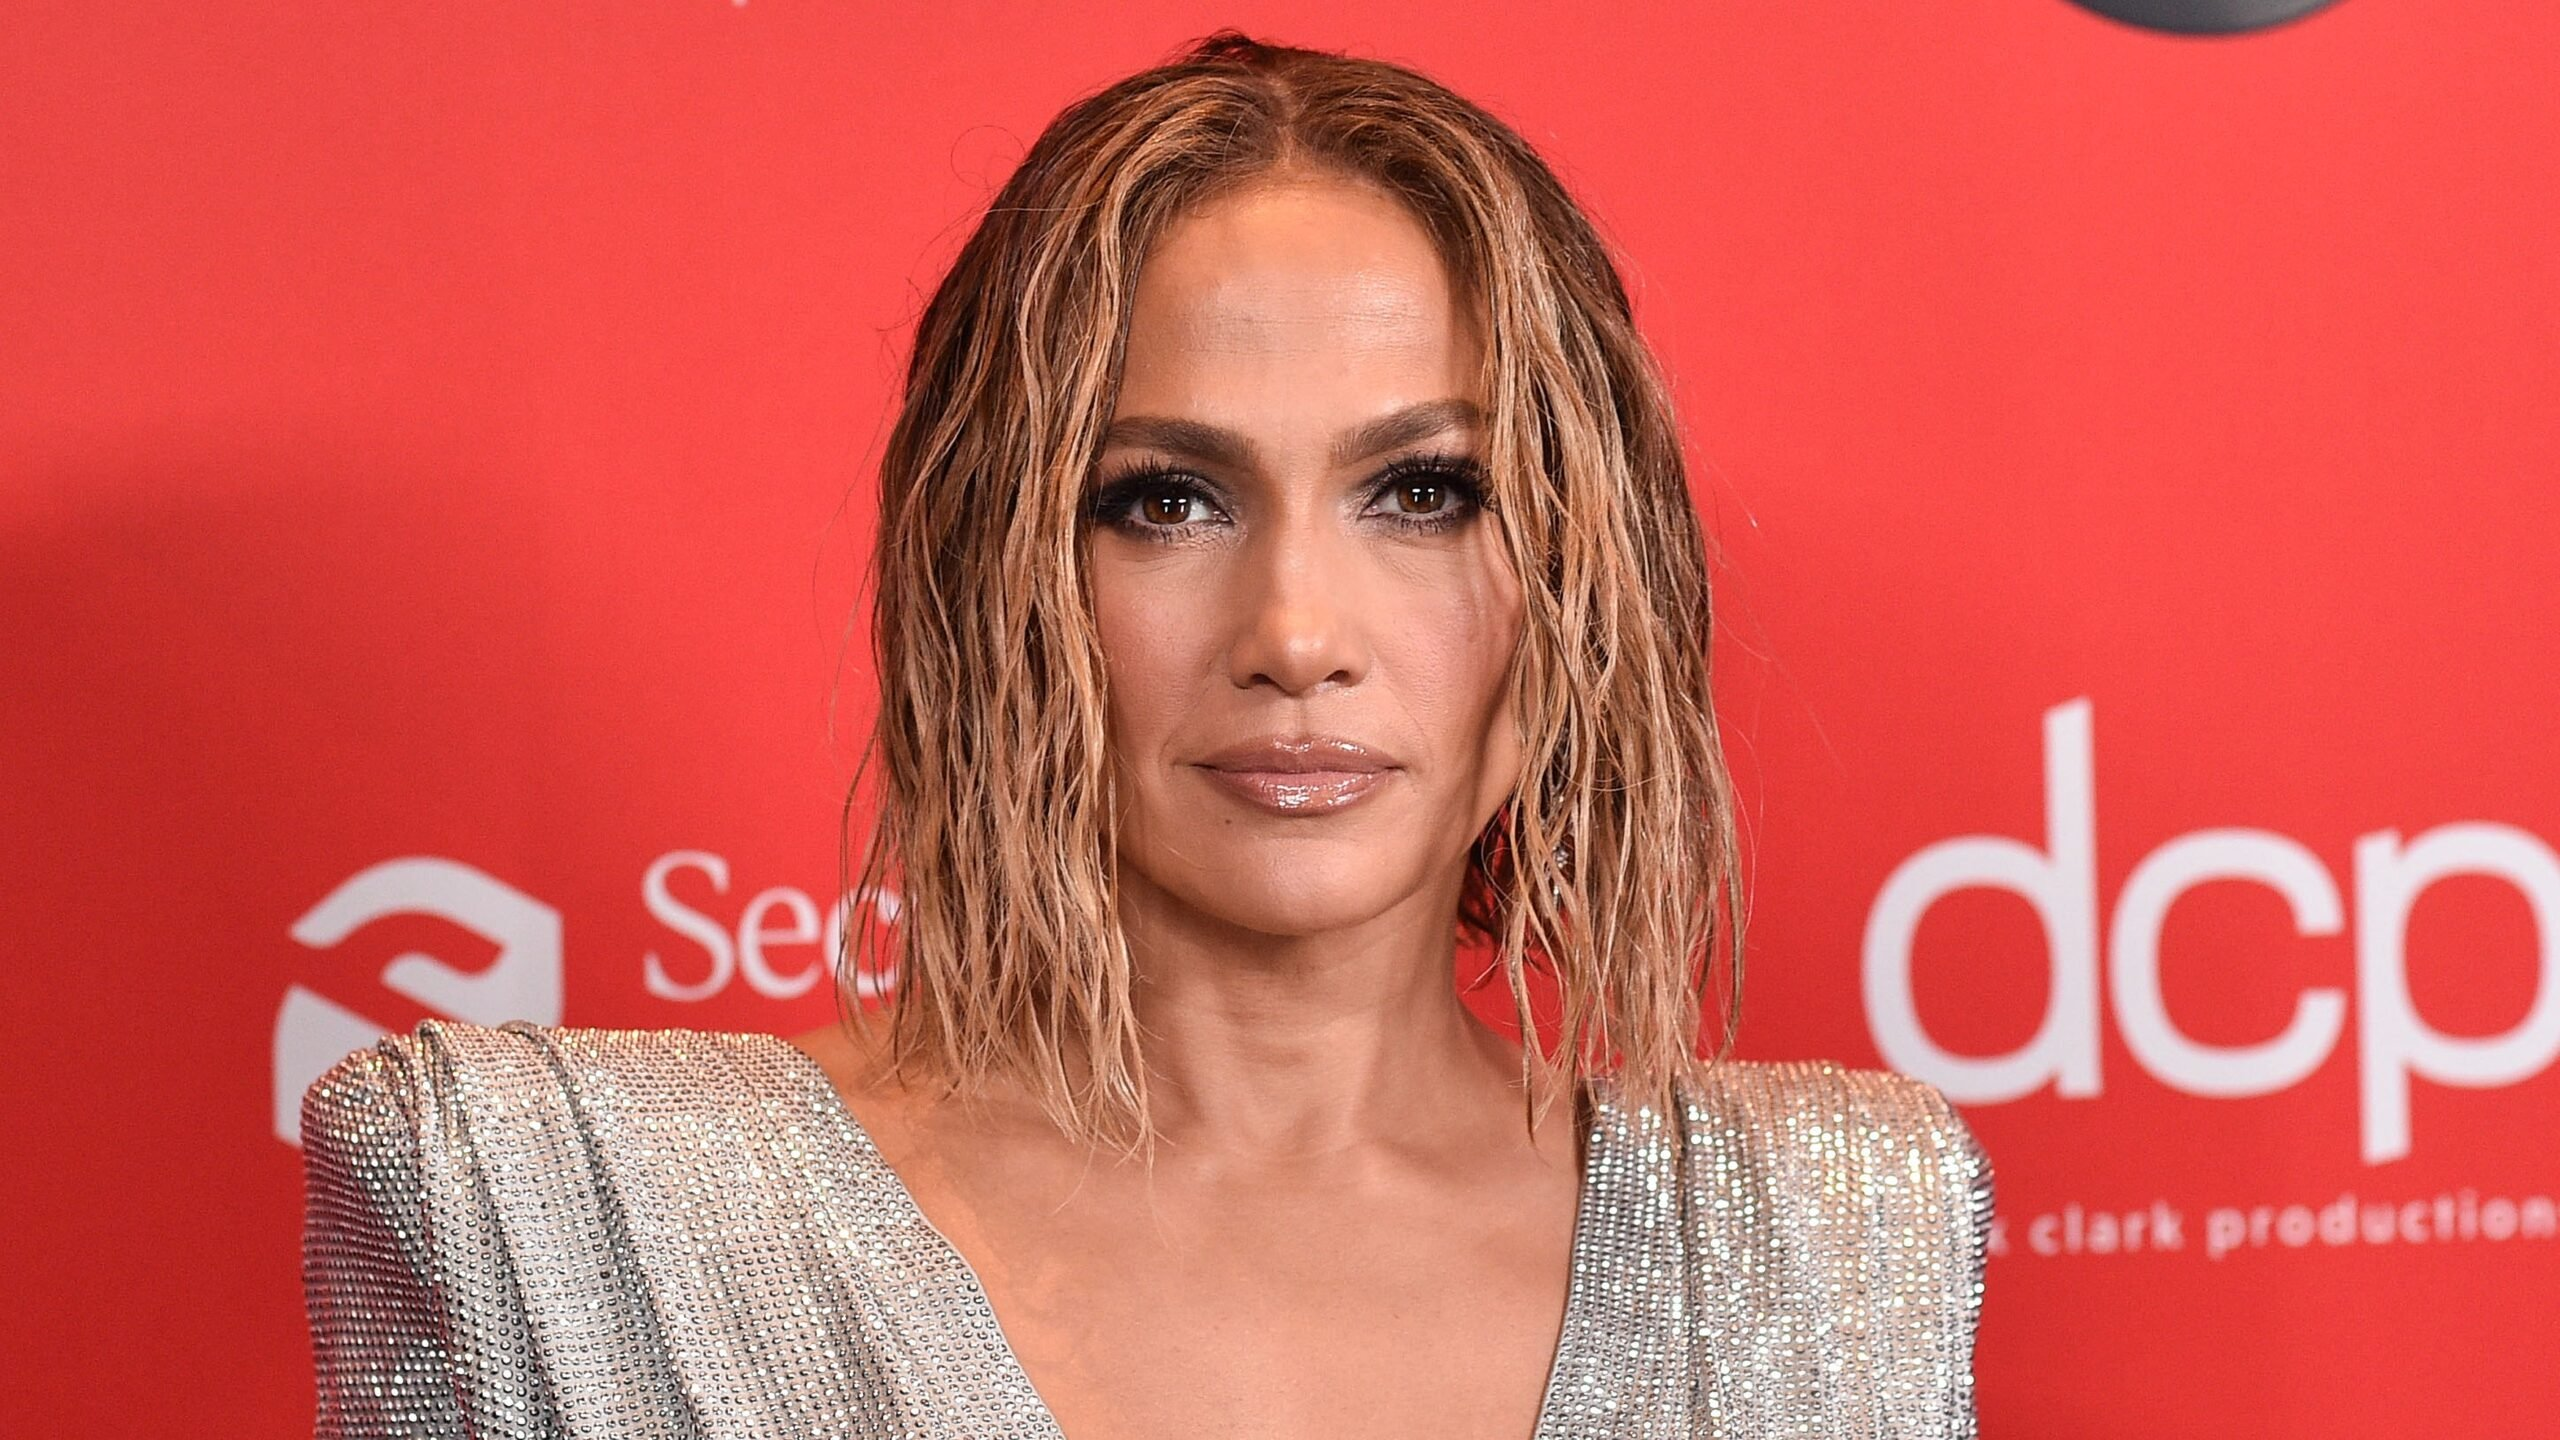 JLo and Netflix sign an agreement to create content